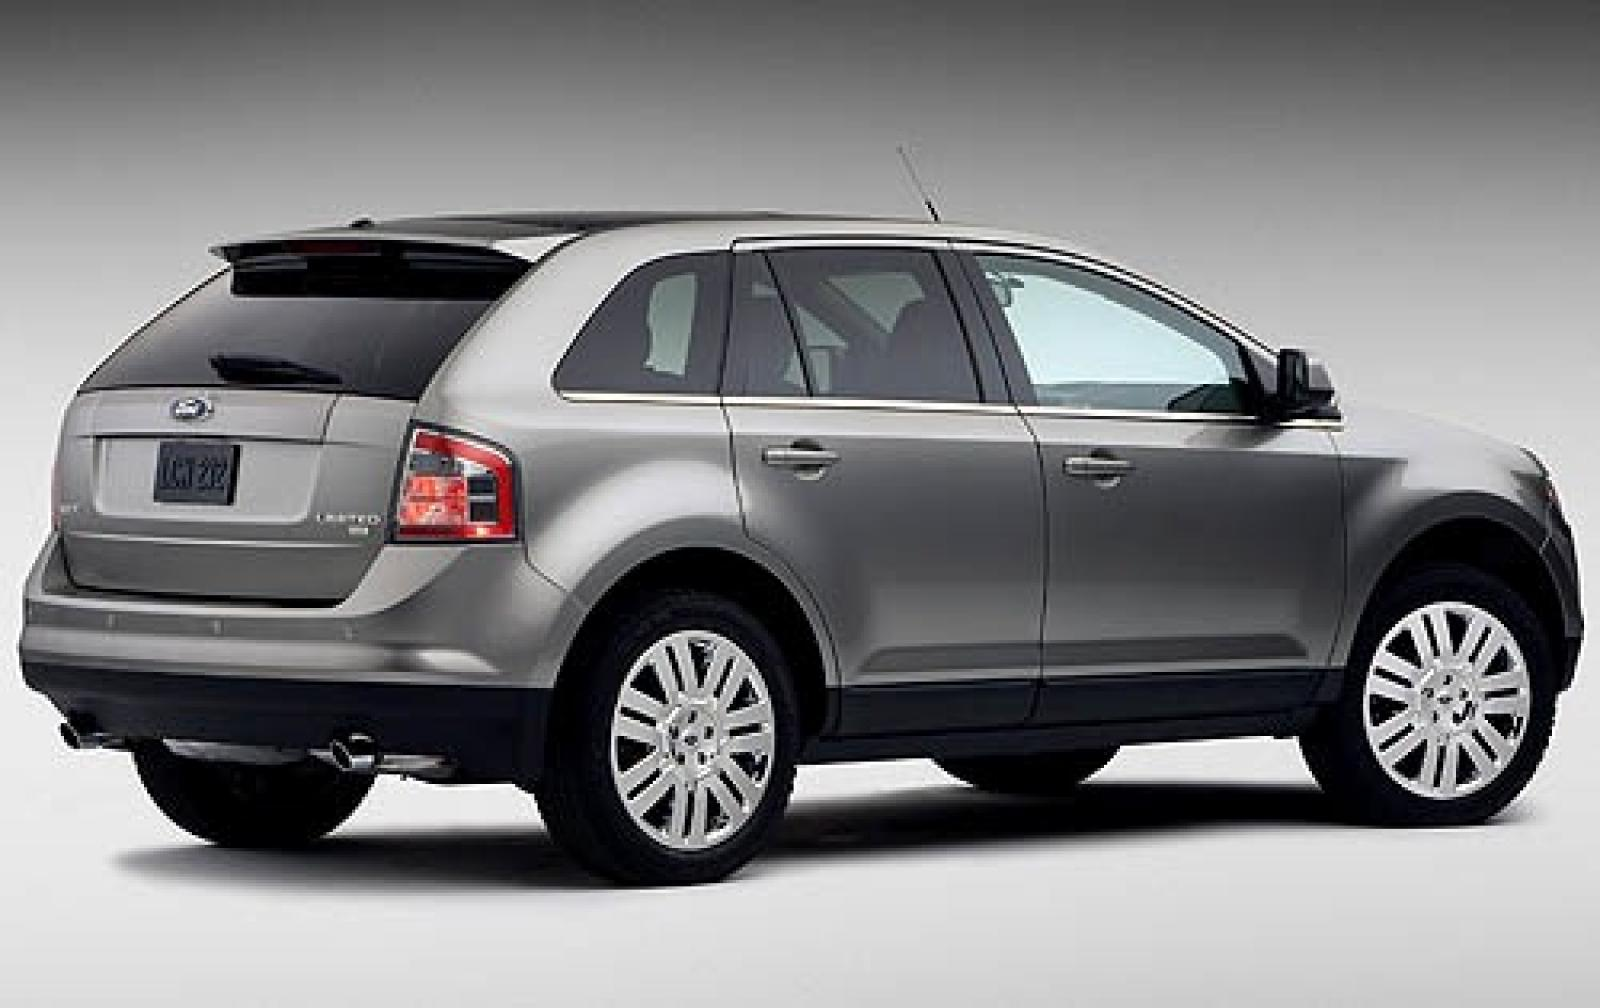 2008 ford edge information and photos zombiedrive. Black Bedroom Furniture Sets. Home Design Ideas